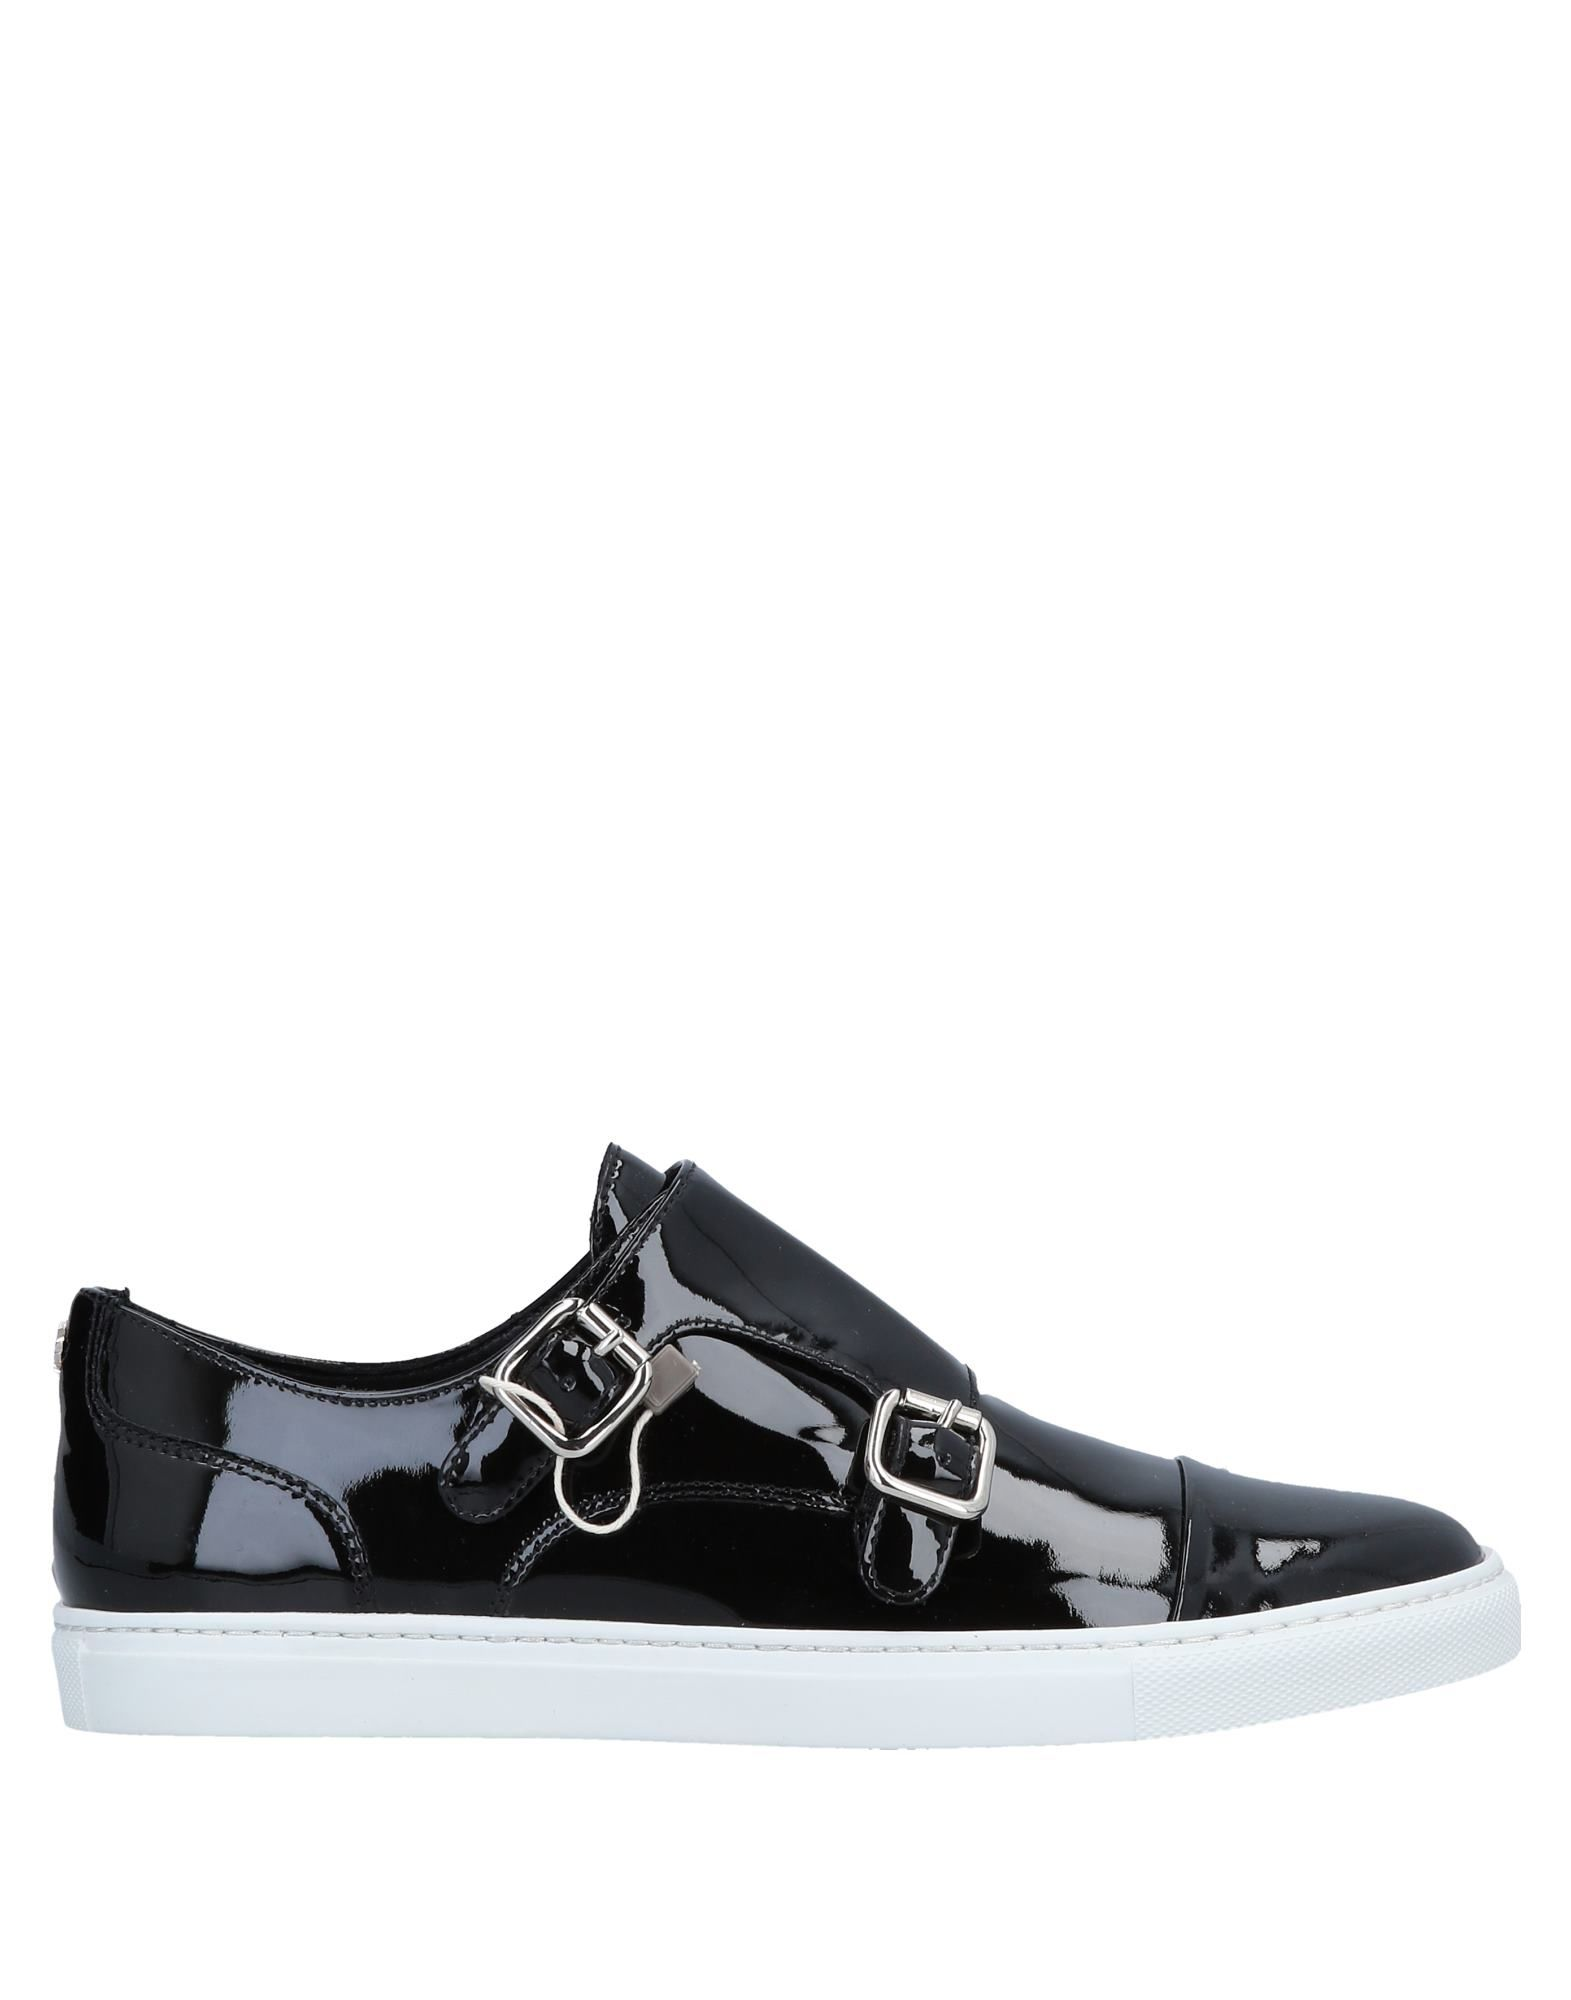 Dsquared2 Sneakers - Women Dsquared2 Sneakers - online on  Canada - Sneakers 11566723CL 53bed3